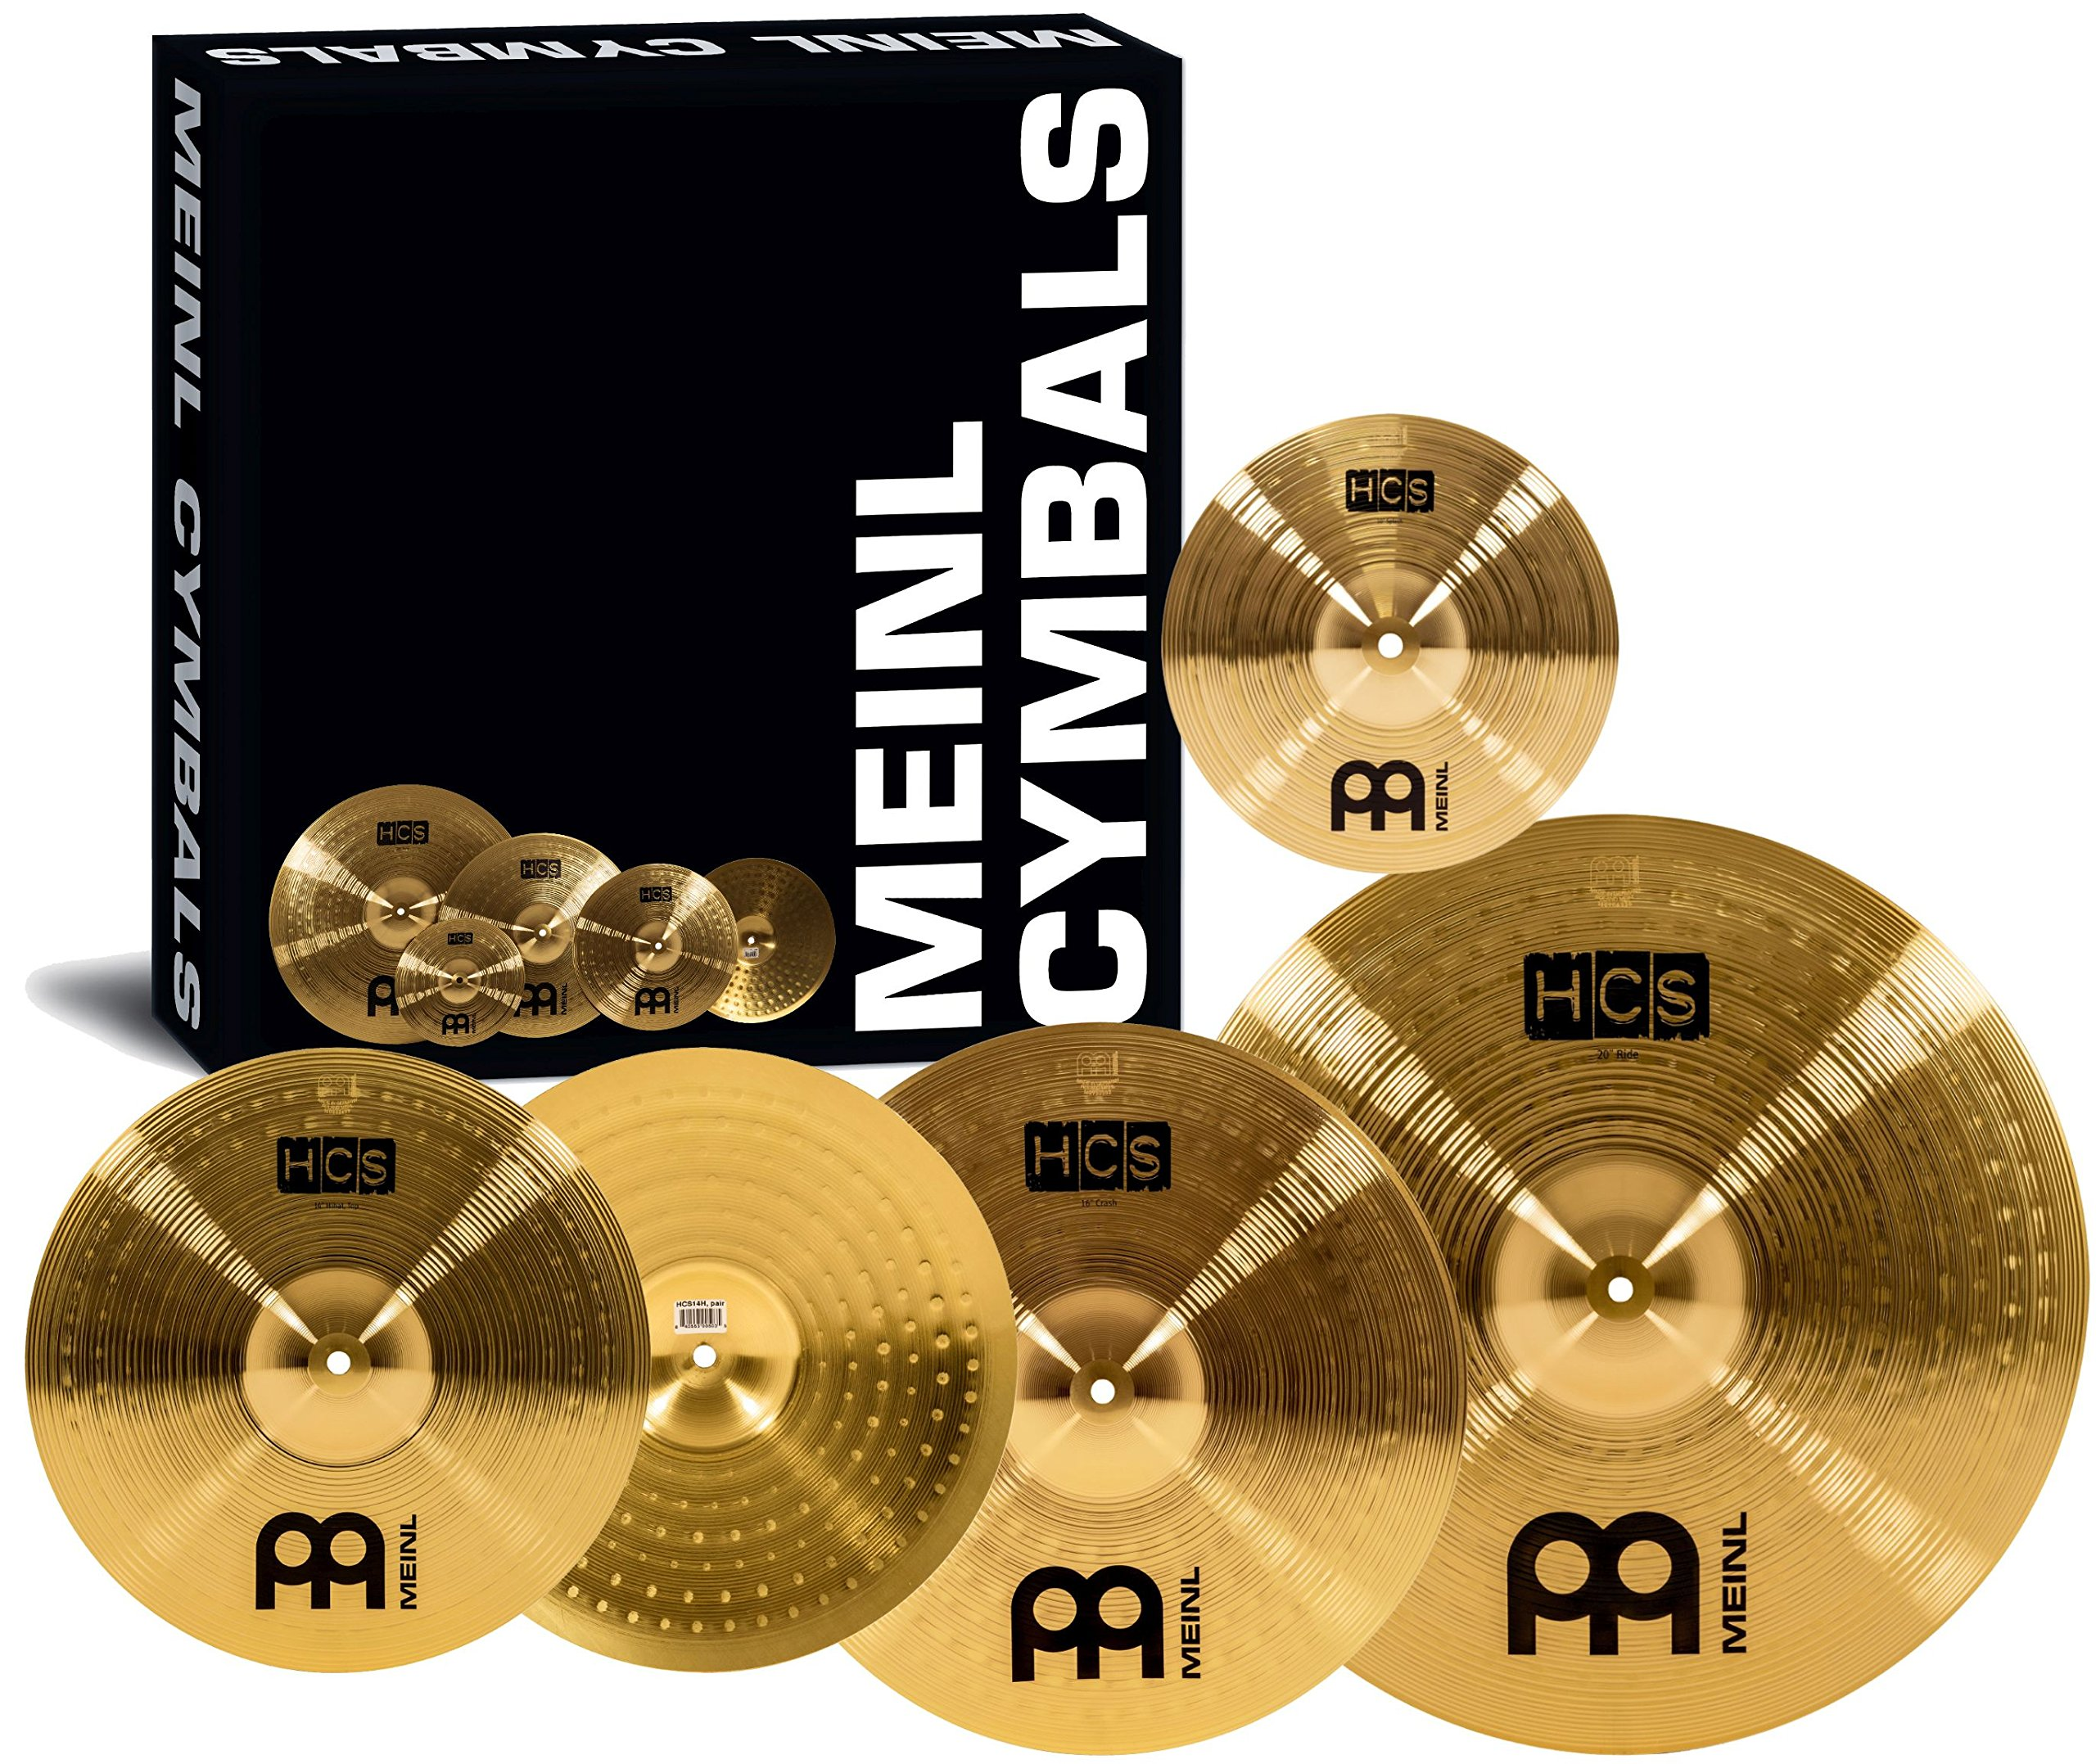 Meinl Cymbal Set Box Pack with 14'' Hihats, 20'' Ride, 16'' Crash, Plus a FREE 10'' Splash - HCS Traditional Finish Brass - Made In Germany, 2-YEAR WARRANTY (HCS141620+10) by Meinl Cymbals